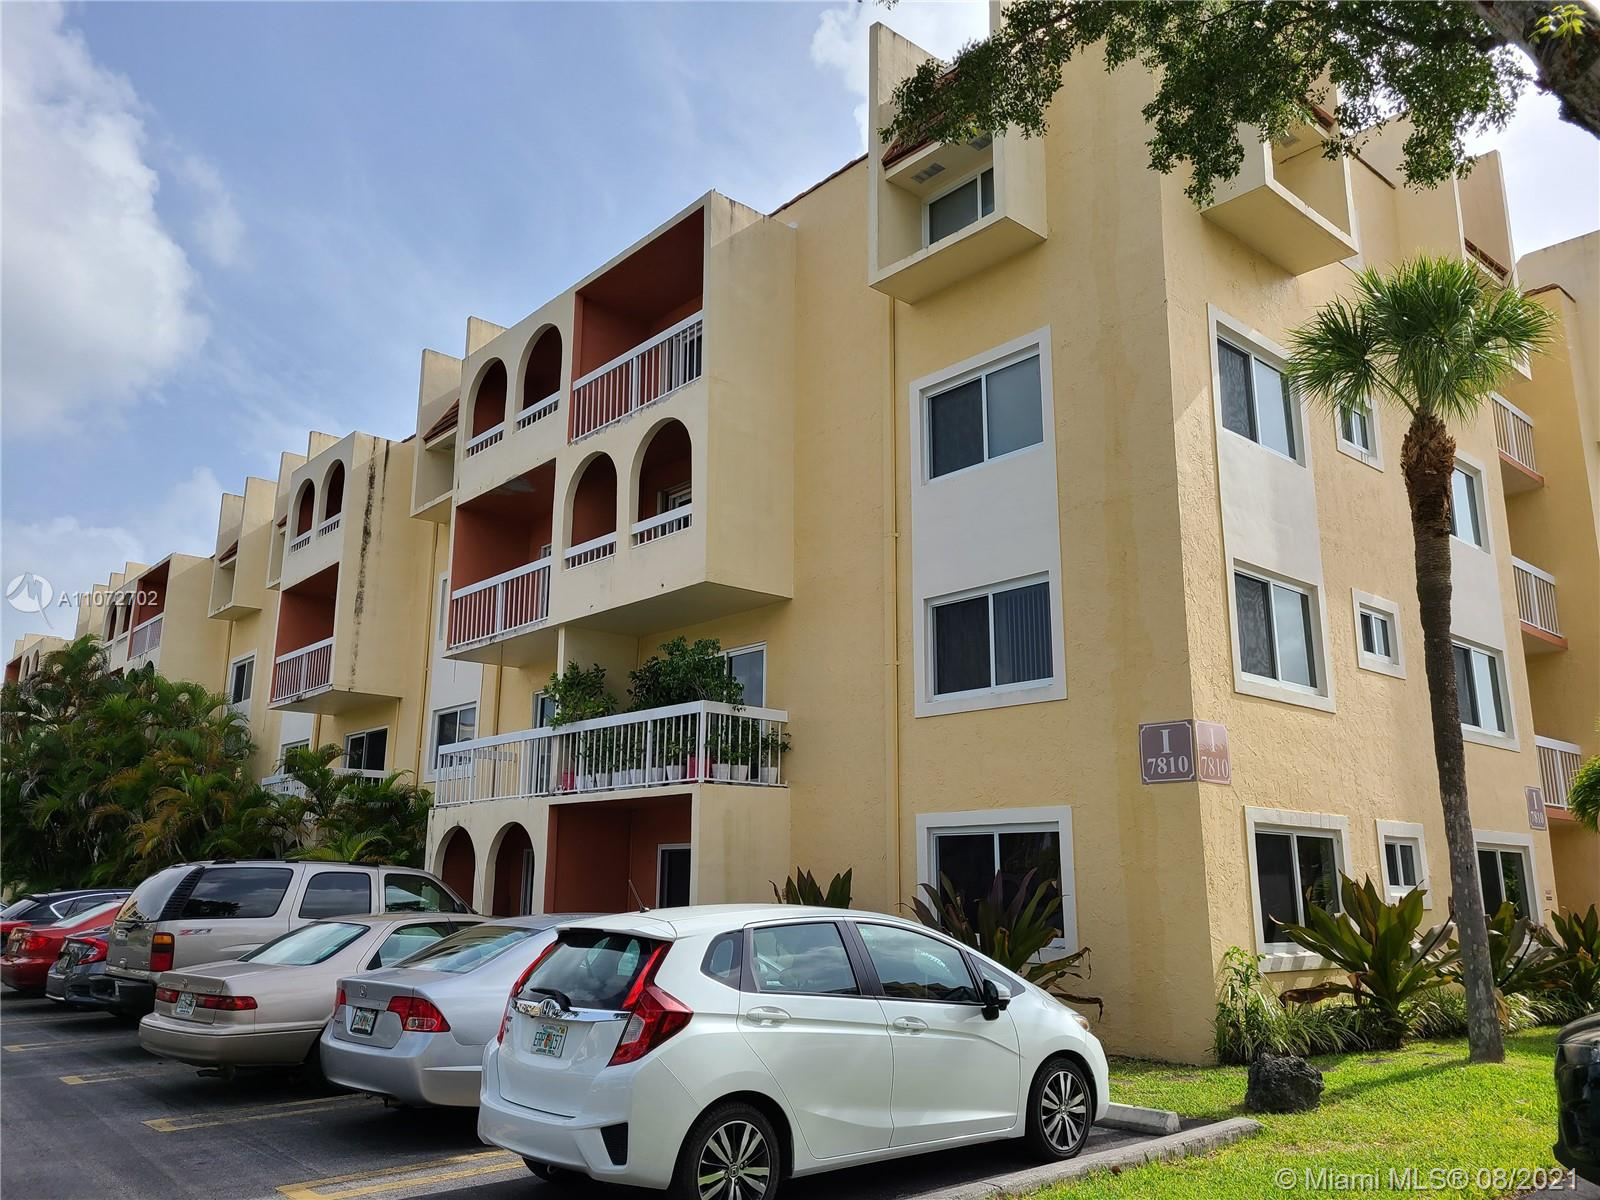 Ideally located at Village of Kings Creek, minutes away from Palmetto Expressway, lots of fine dining and shopping. This well maintained 2 bedroom 1 bath condo is a great starter home or an ideal rental investment property. Ready for a new owner to place their personal touch. Unit has impact windows and impact sliding glass door4. Dogs are not allowed in the community. 1 cat per unit but must remain inside (see attached rules for restrictions). Sold AS-IS.